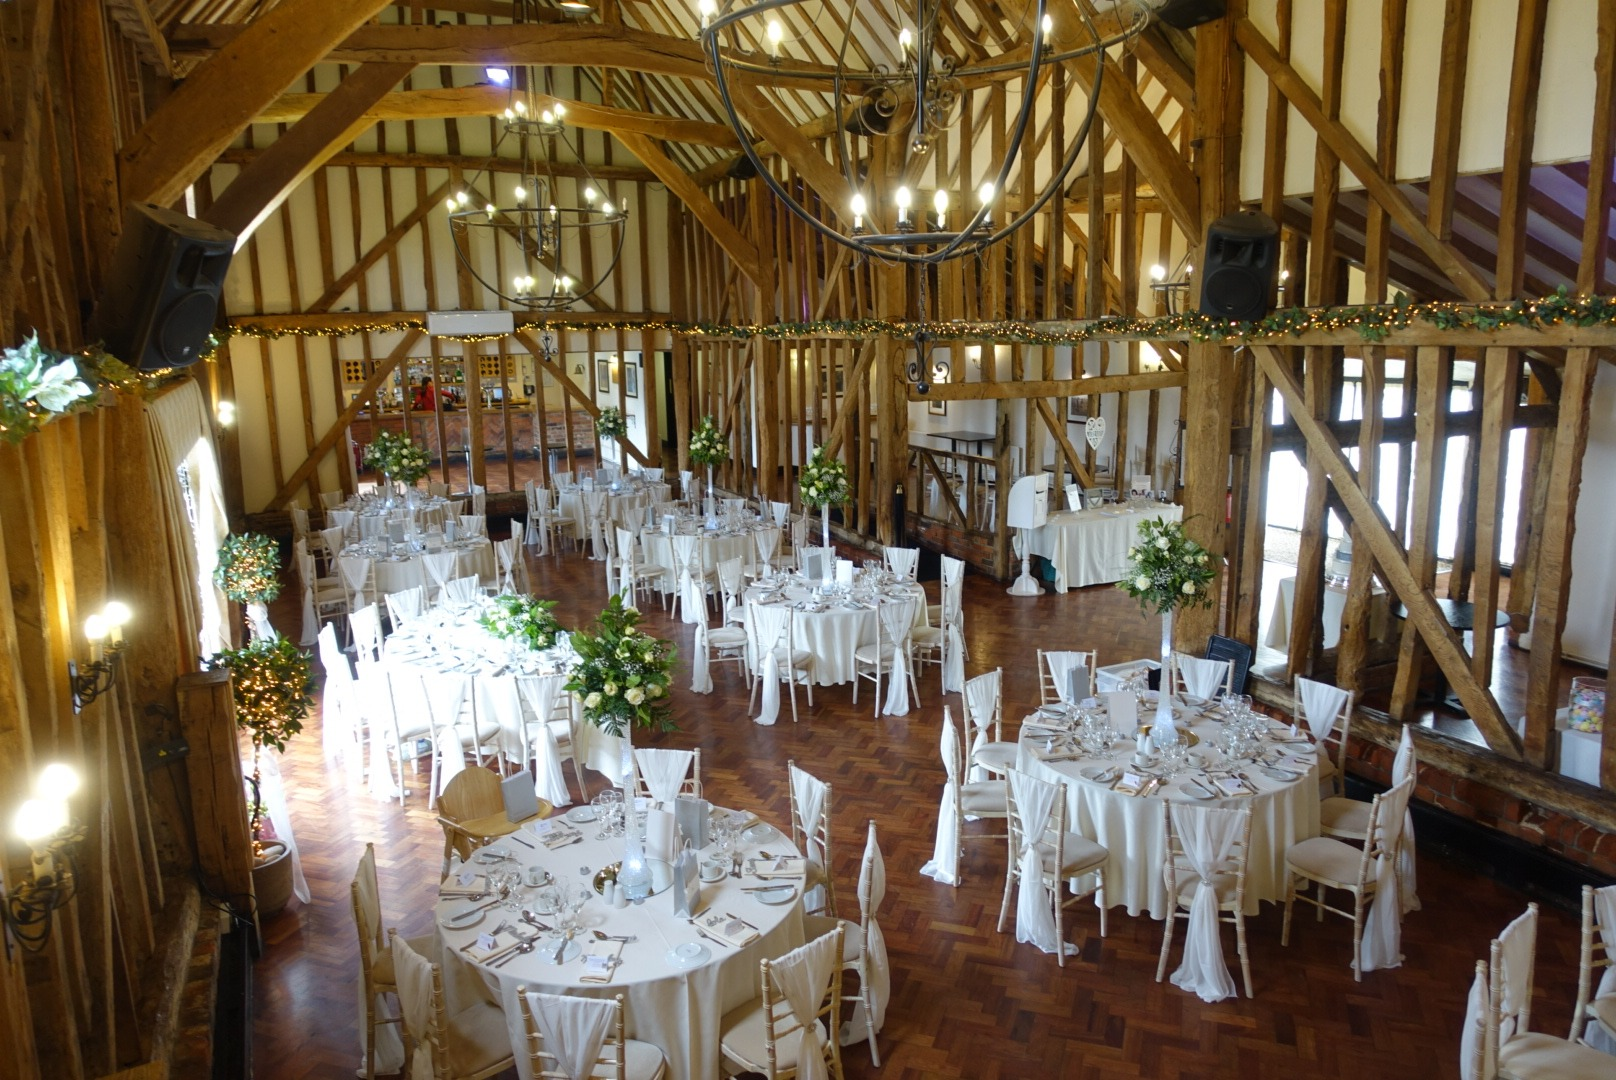 Golf club course in essex top wedding venue crondon park for What is wedding venue